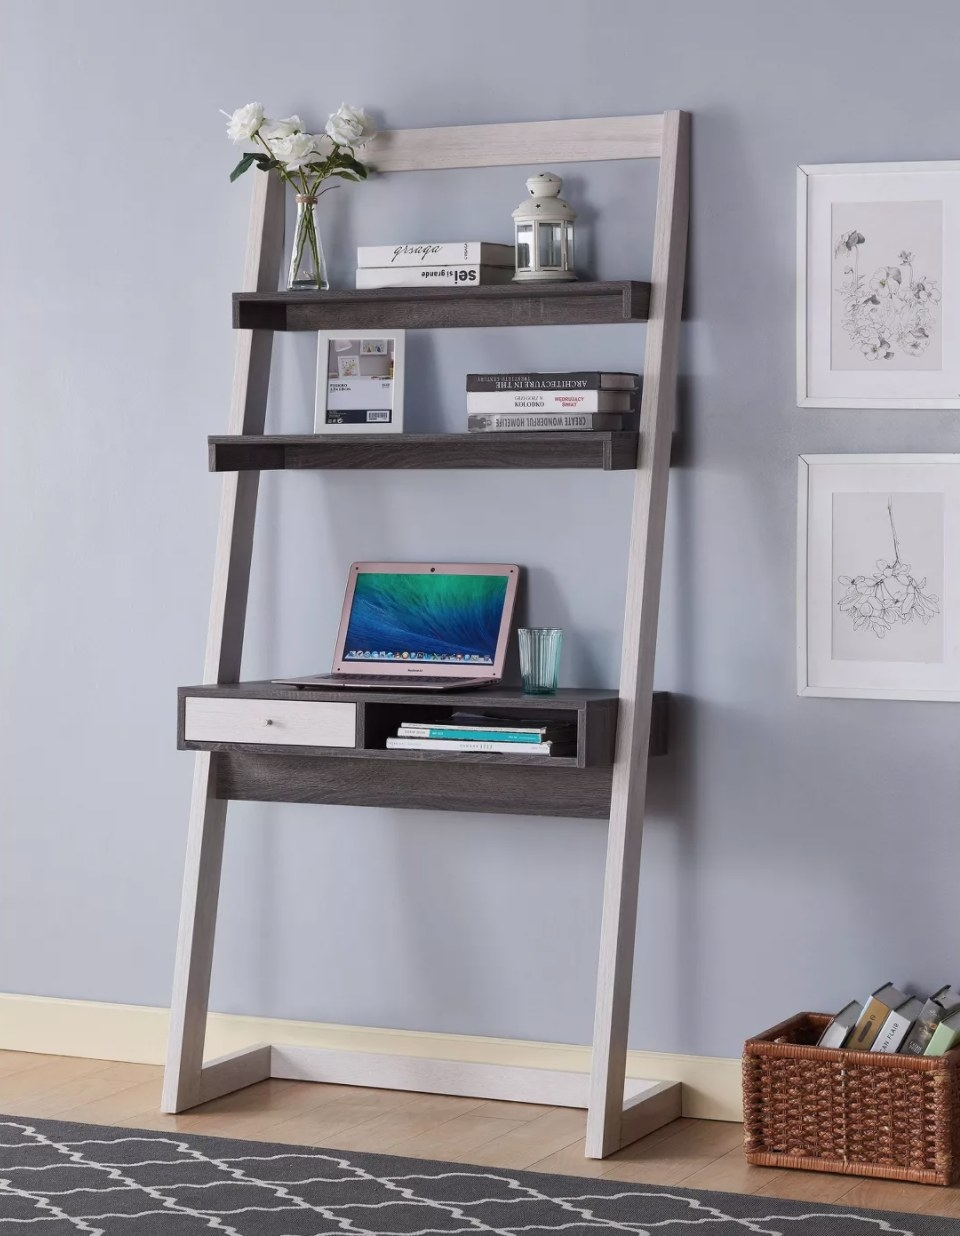 A leaning wooden ladder desk with two shelves in light and dark gray